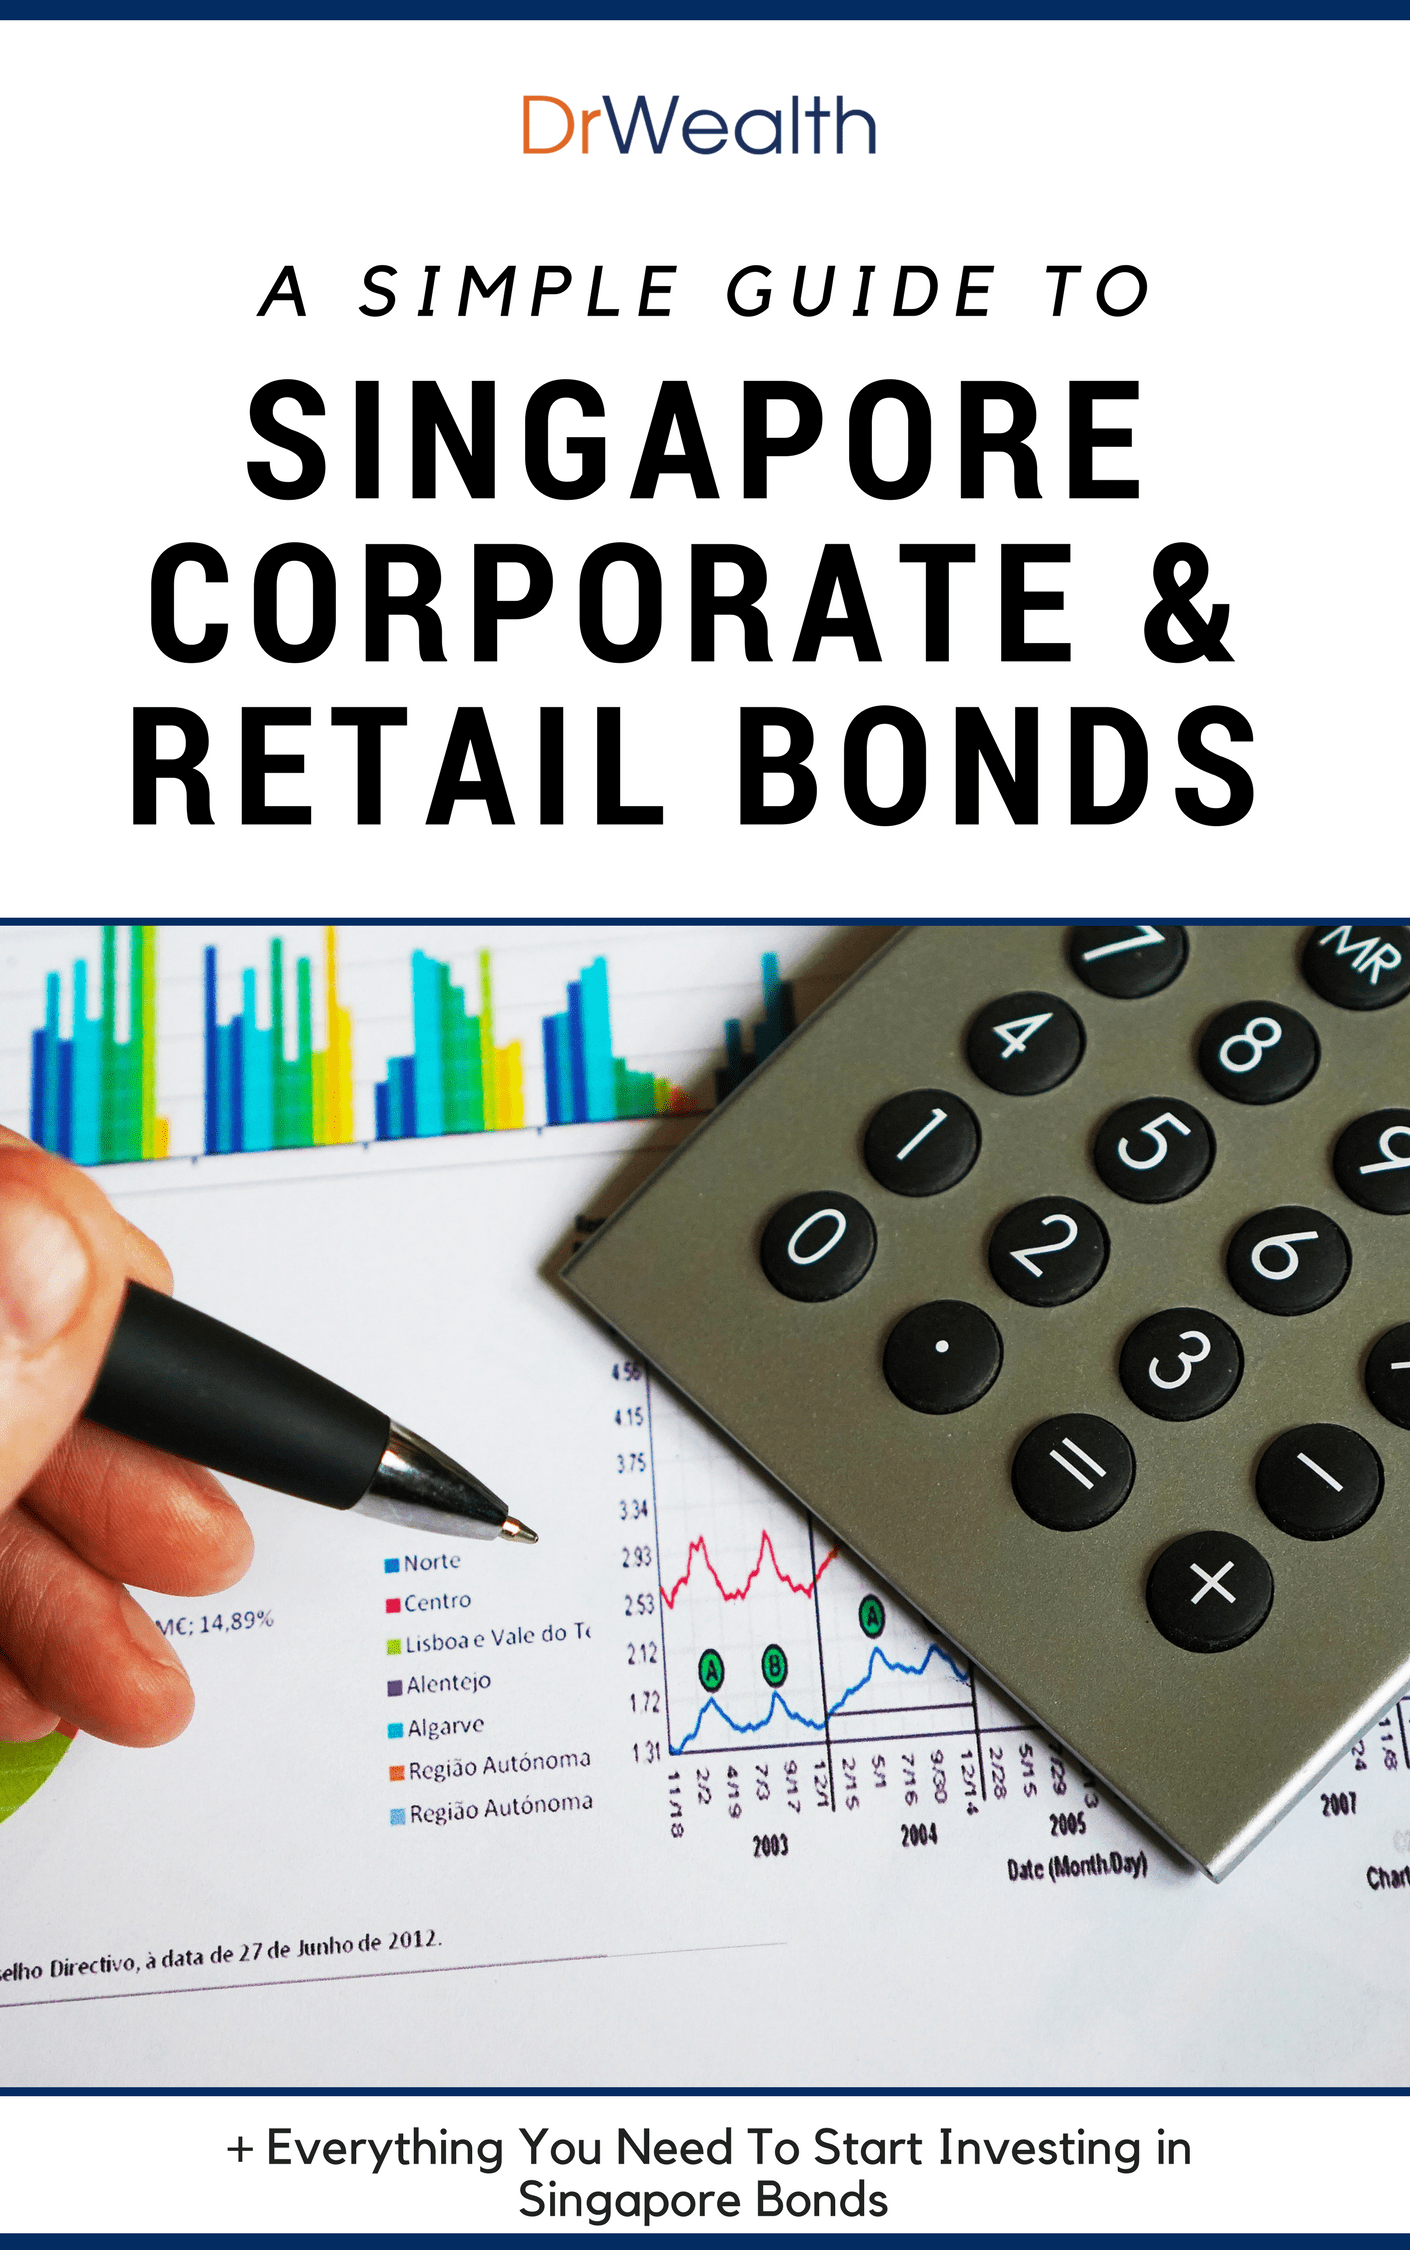 A Simple Guide to Singapore Corporate & Retail Bonds